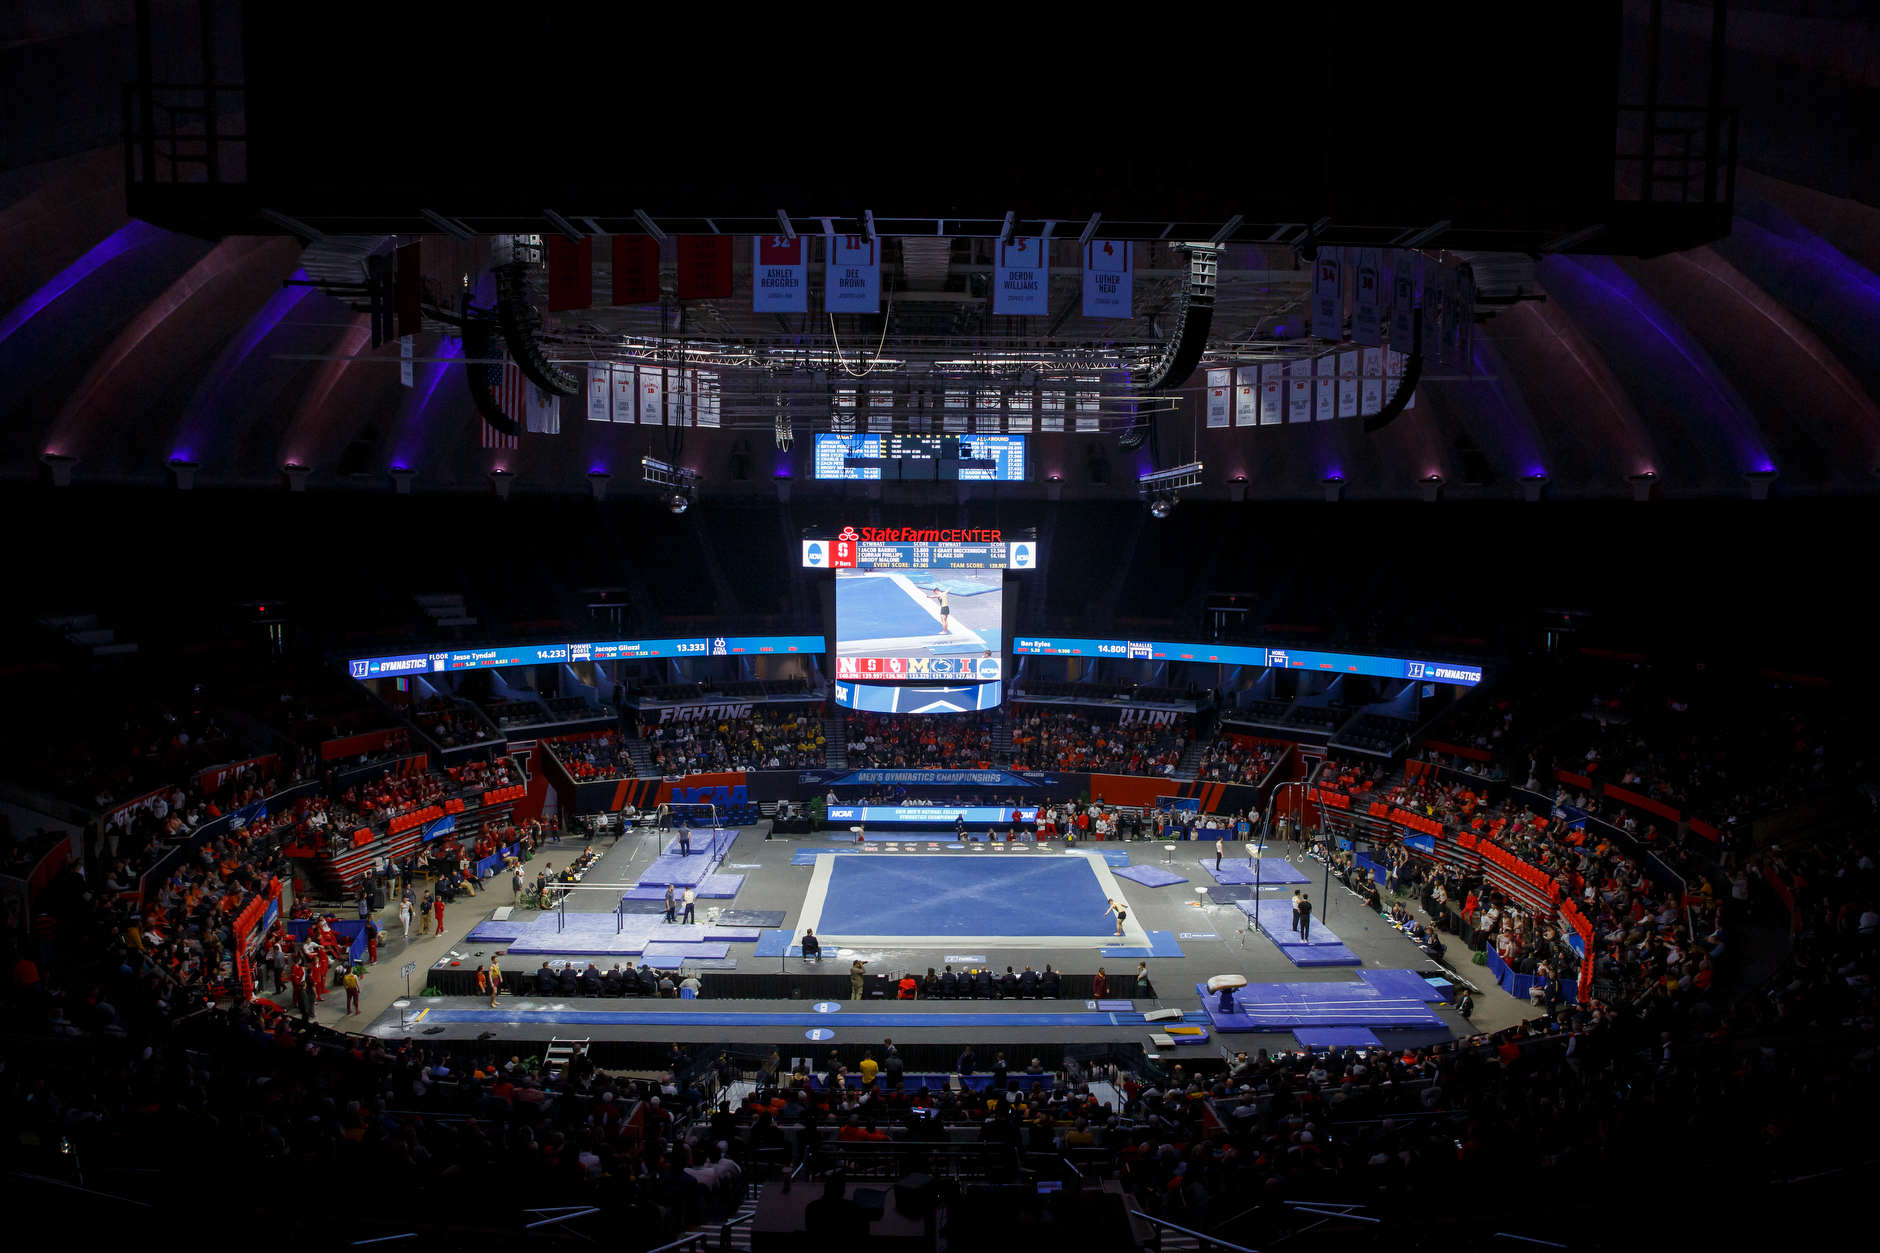 Teams compete at the NCAA Men's Gymnastics Championships on Saturday, April 20, 2019, at the State Farm Center in Champaign, Illinois. (Photo by James Brosher)